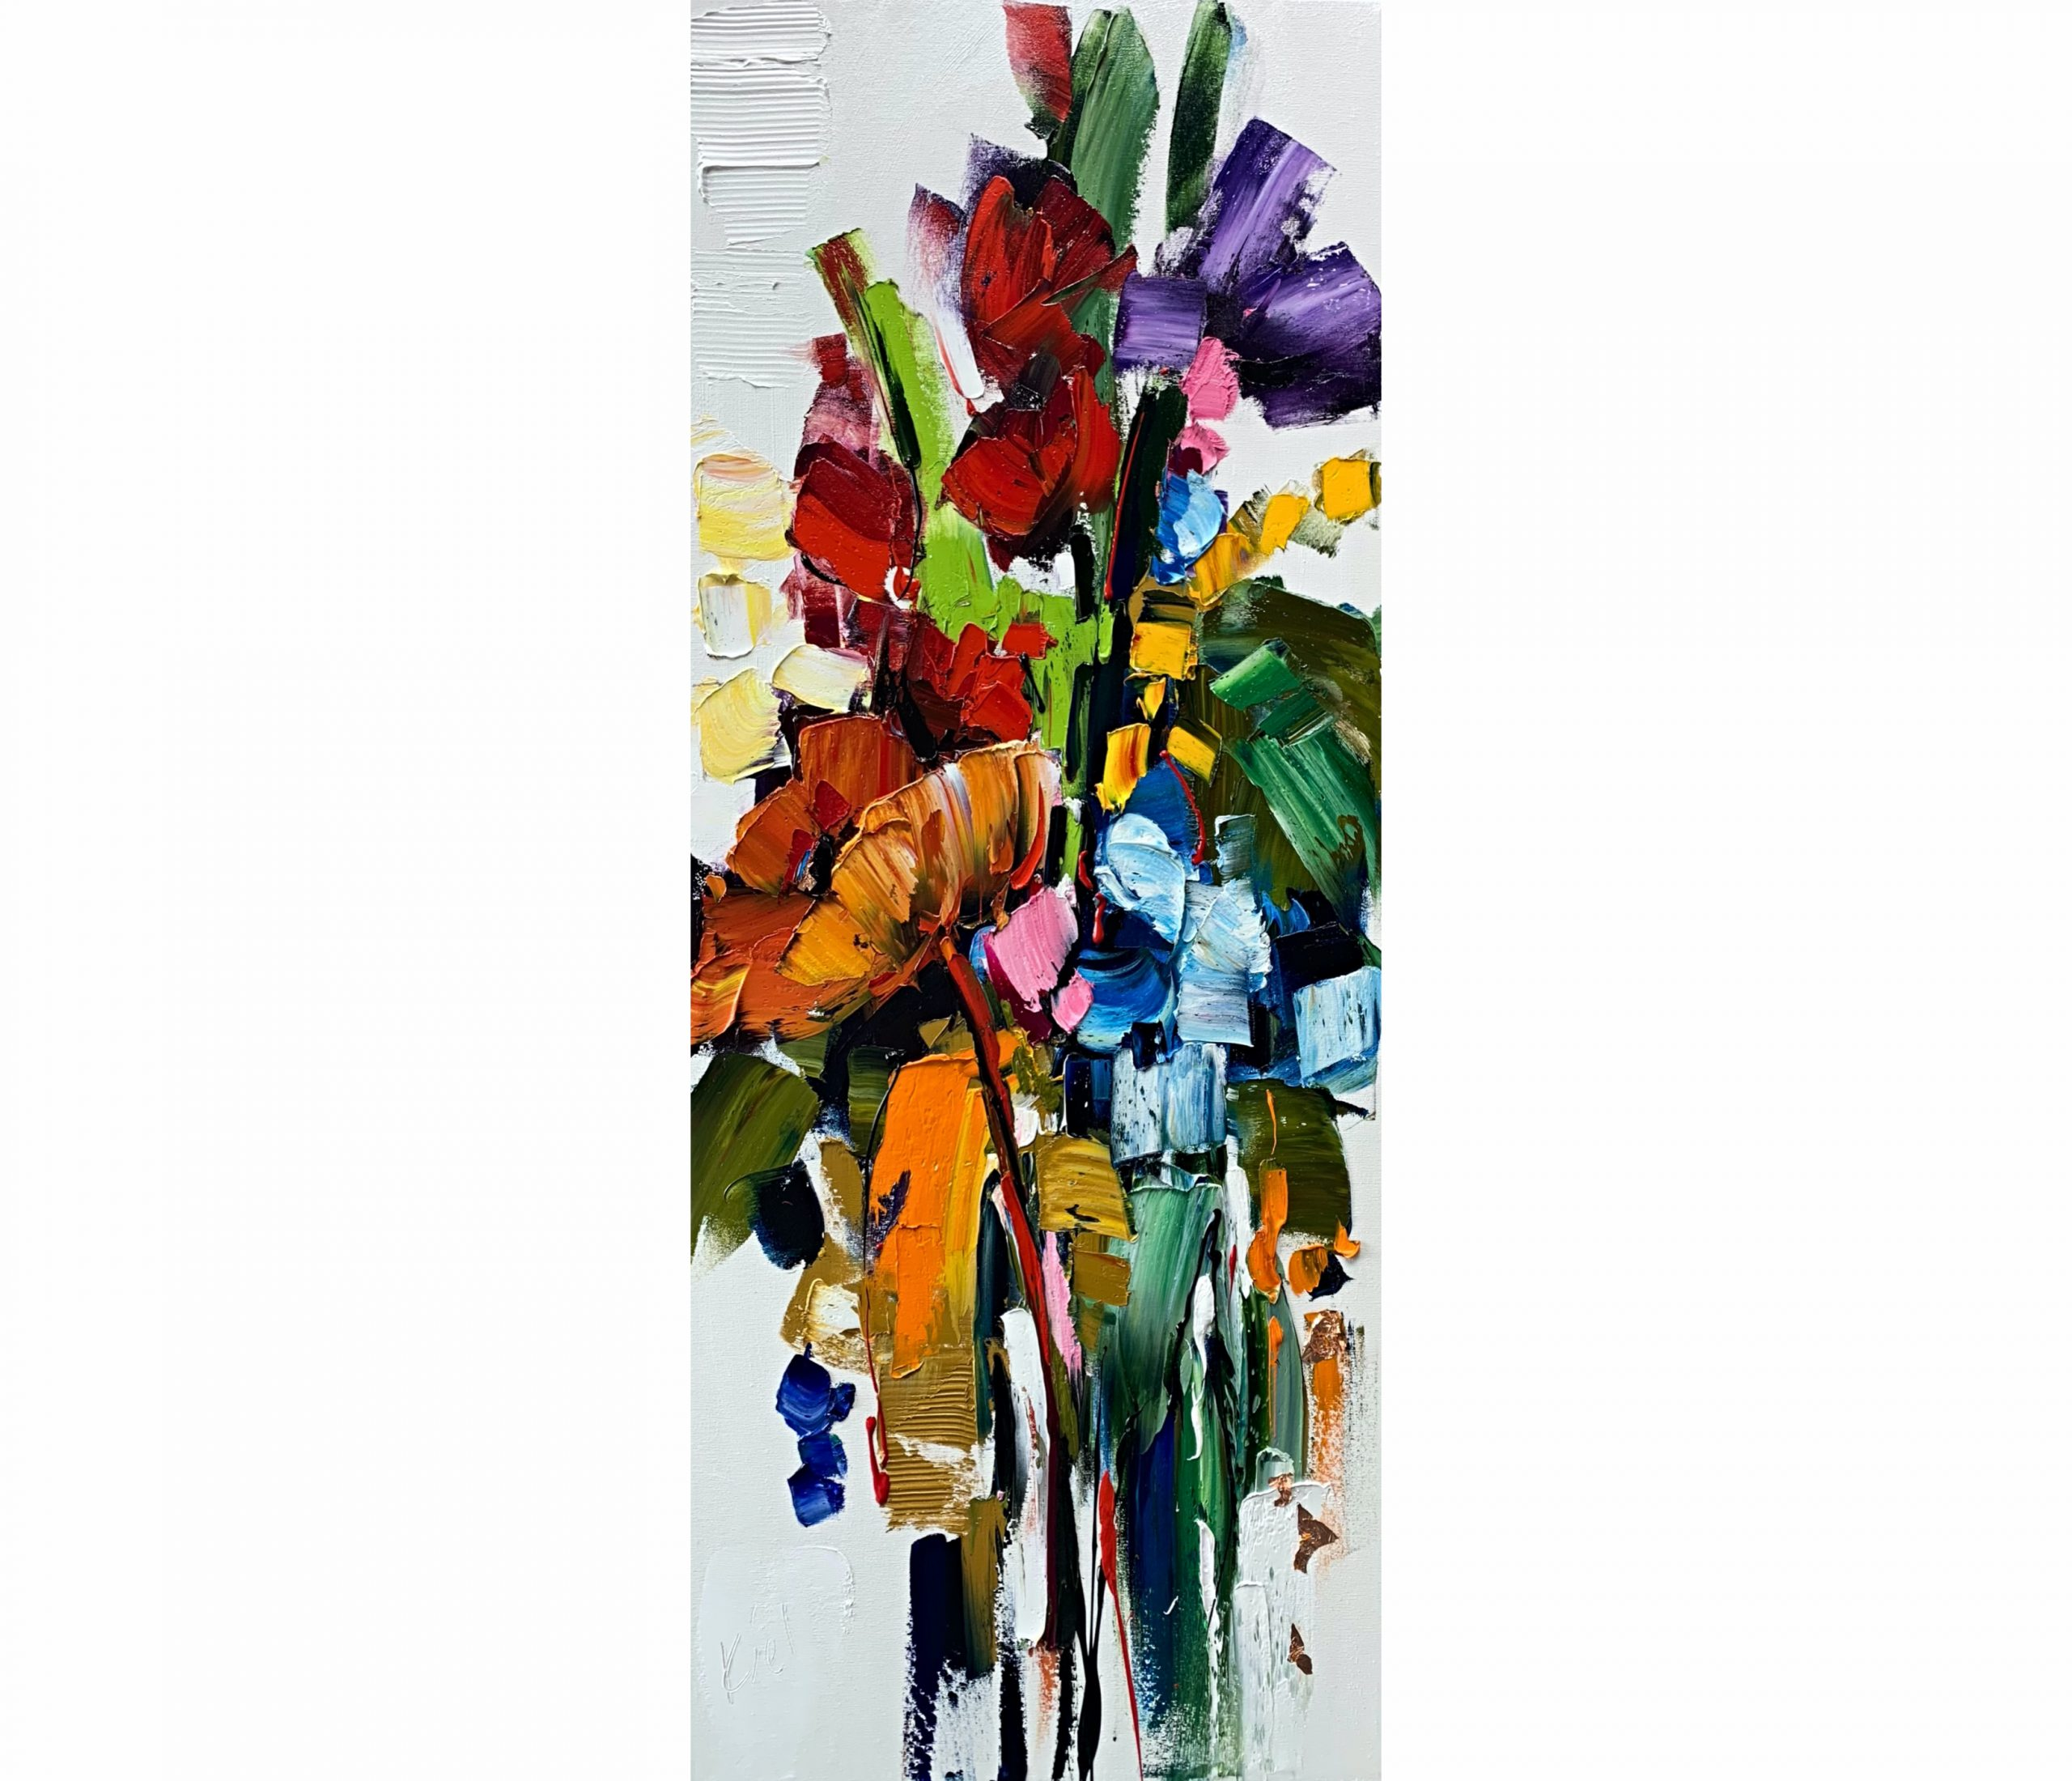 Hanging in the Balance, oil flower painting by Kimberly Kiel   Effusion Art Gallery + Cast Glass Studio, Invermere BC